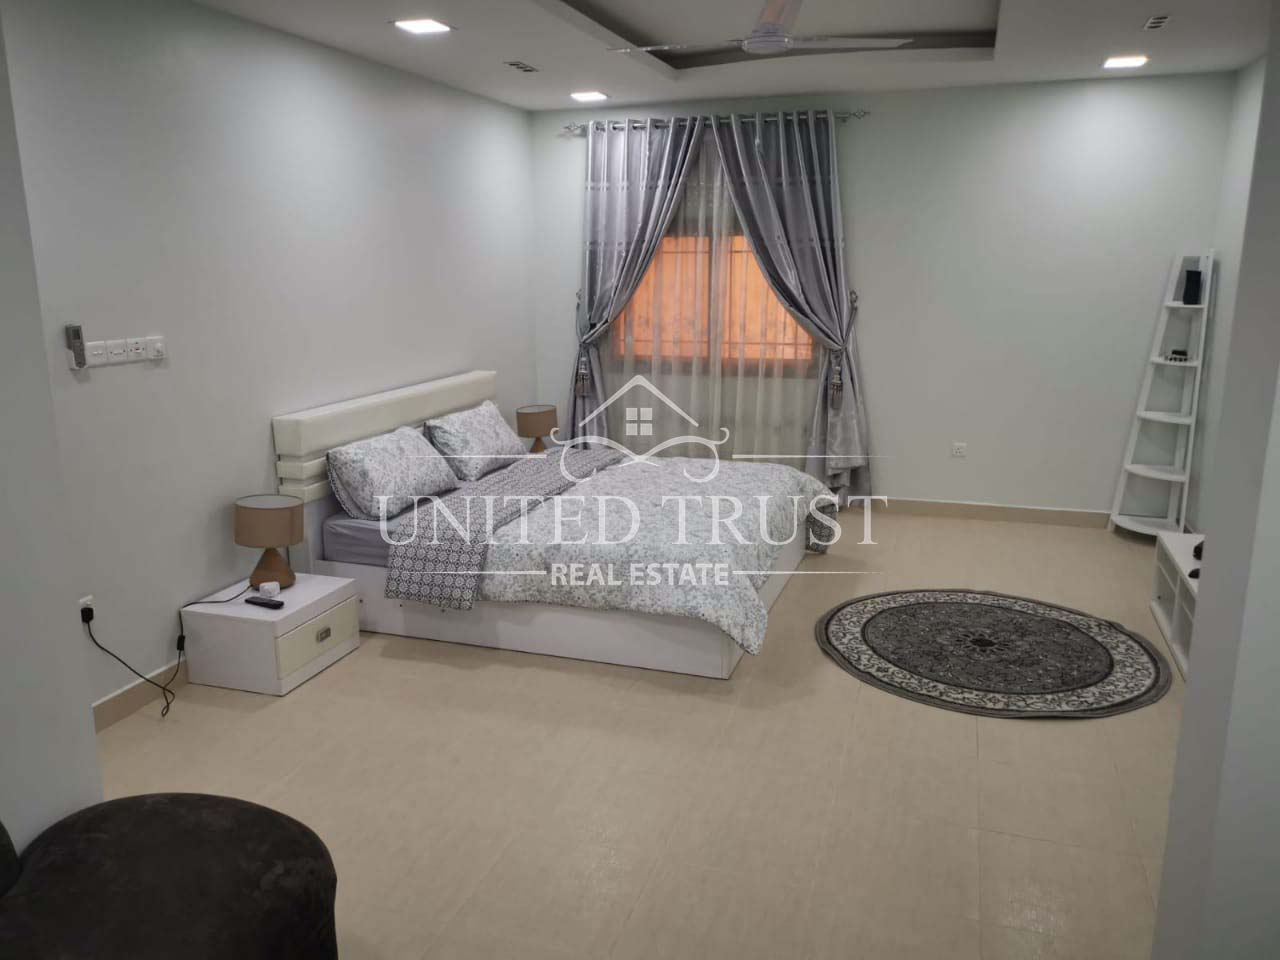 For rent big apartment in Qalali fully furnished. Ref: QAL-MB-011